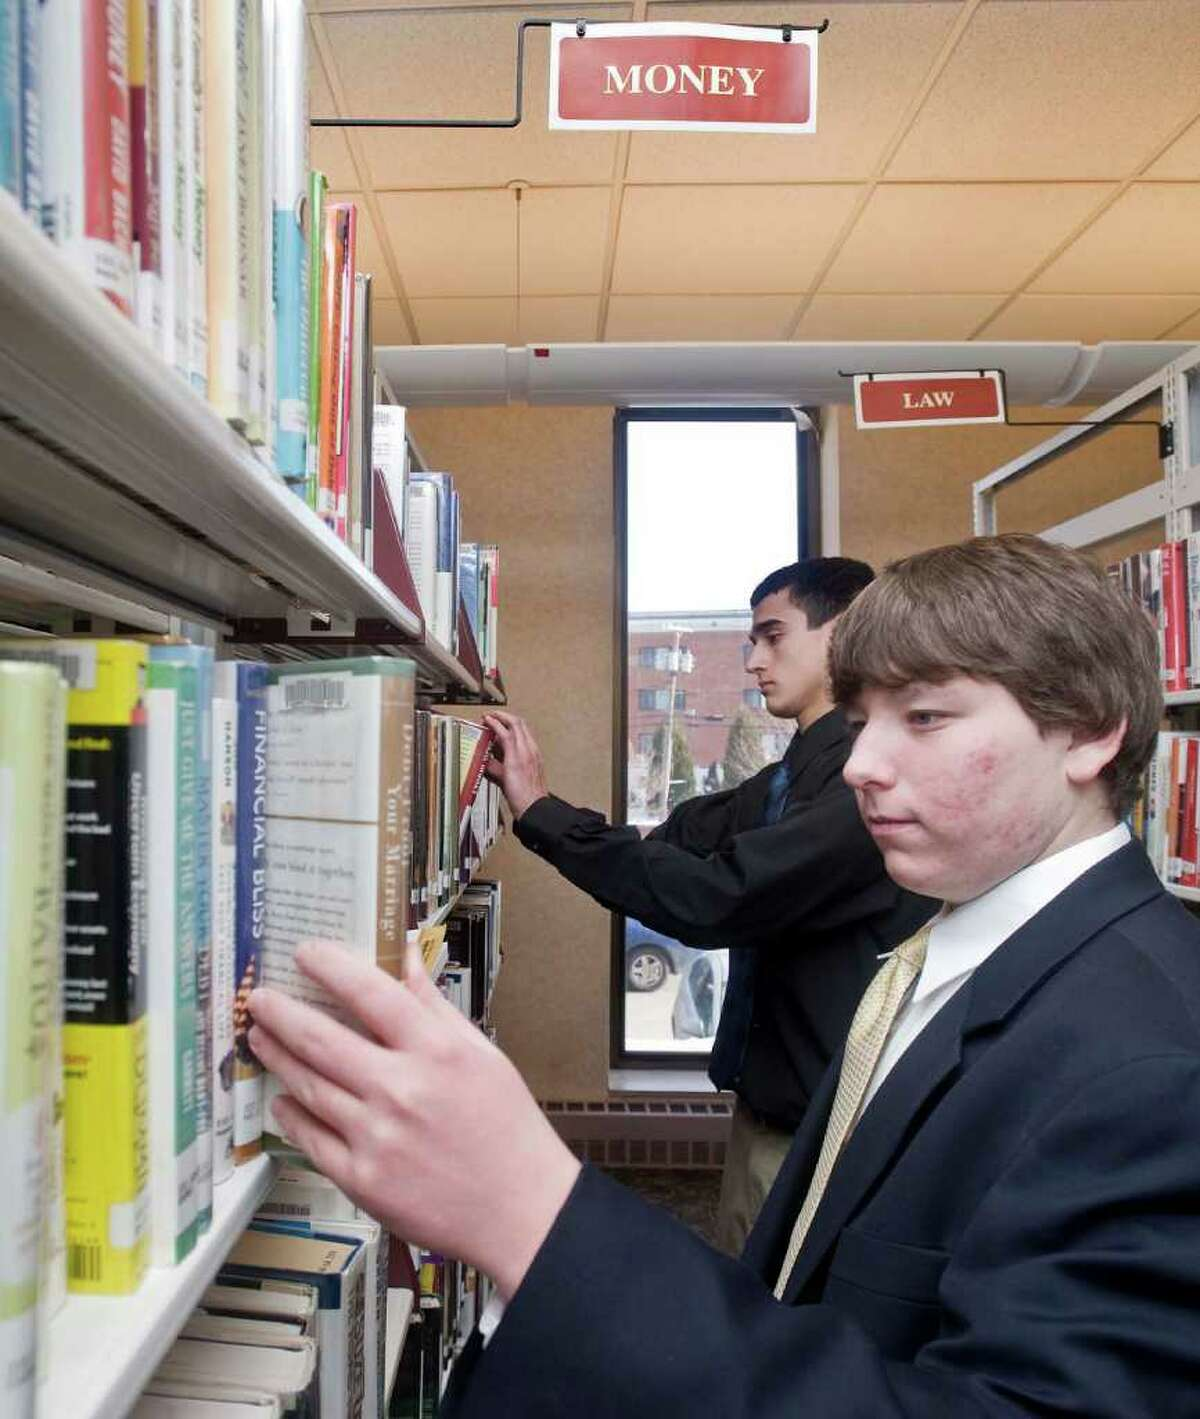 Danbury High School juniors Chris DelDebbio and Matt Hanrahan select books from the Money section of Danbury Public Library for a financial literacy display at the library as part of their project to reach out. Monday, Jan. 31, 2011